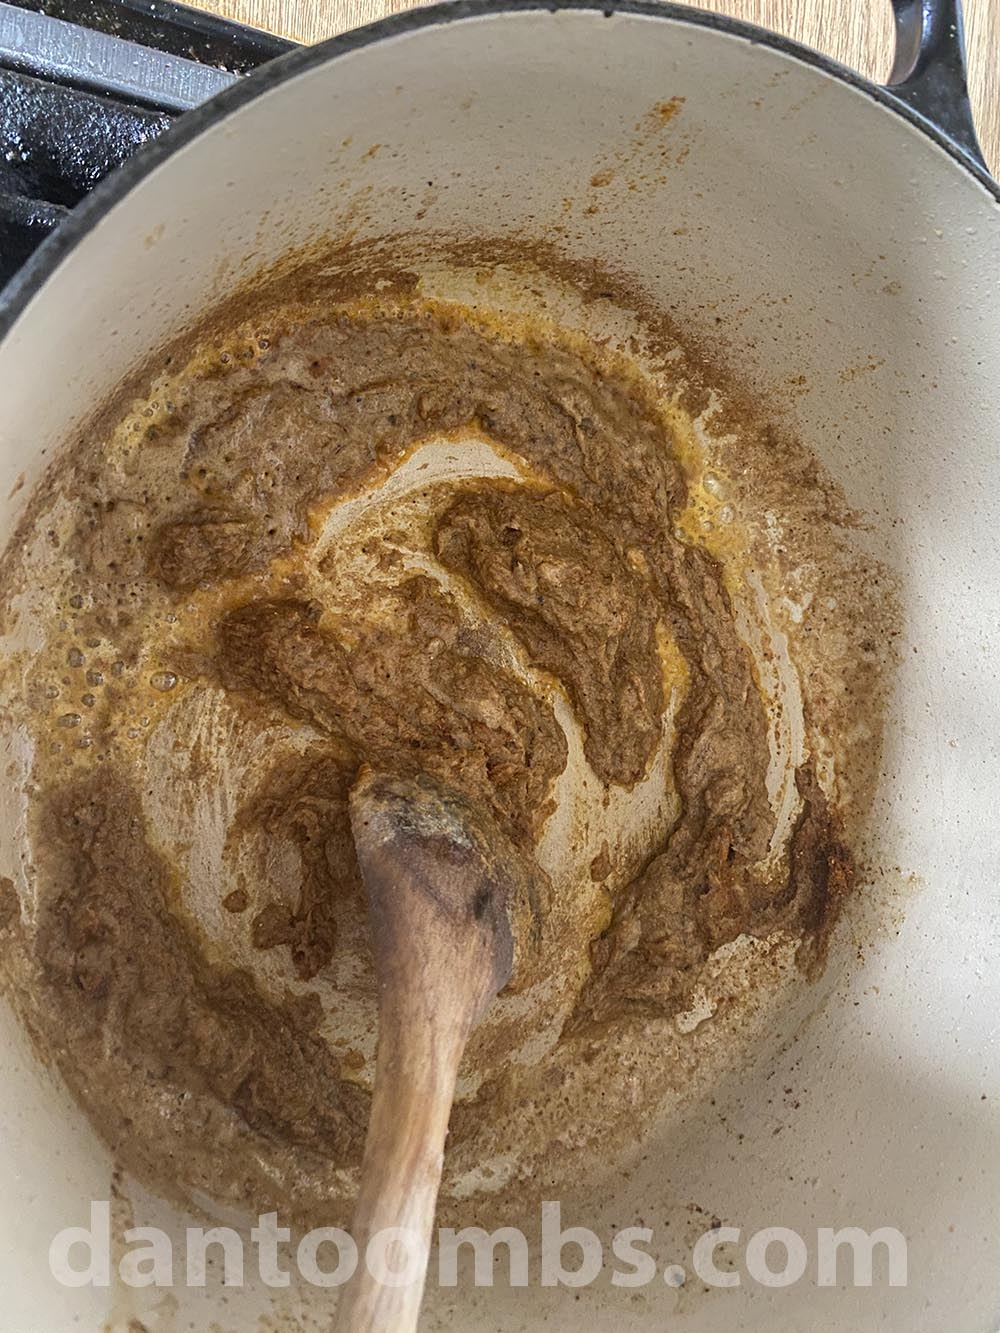 Frying the yellow curry paste